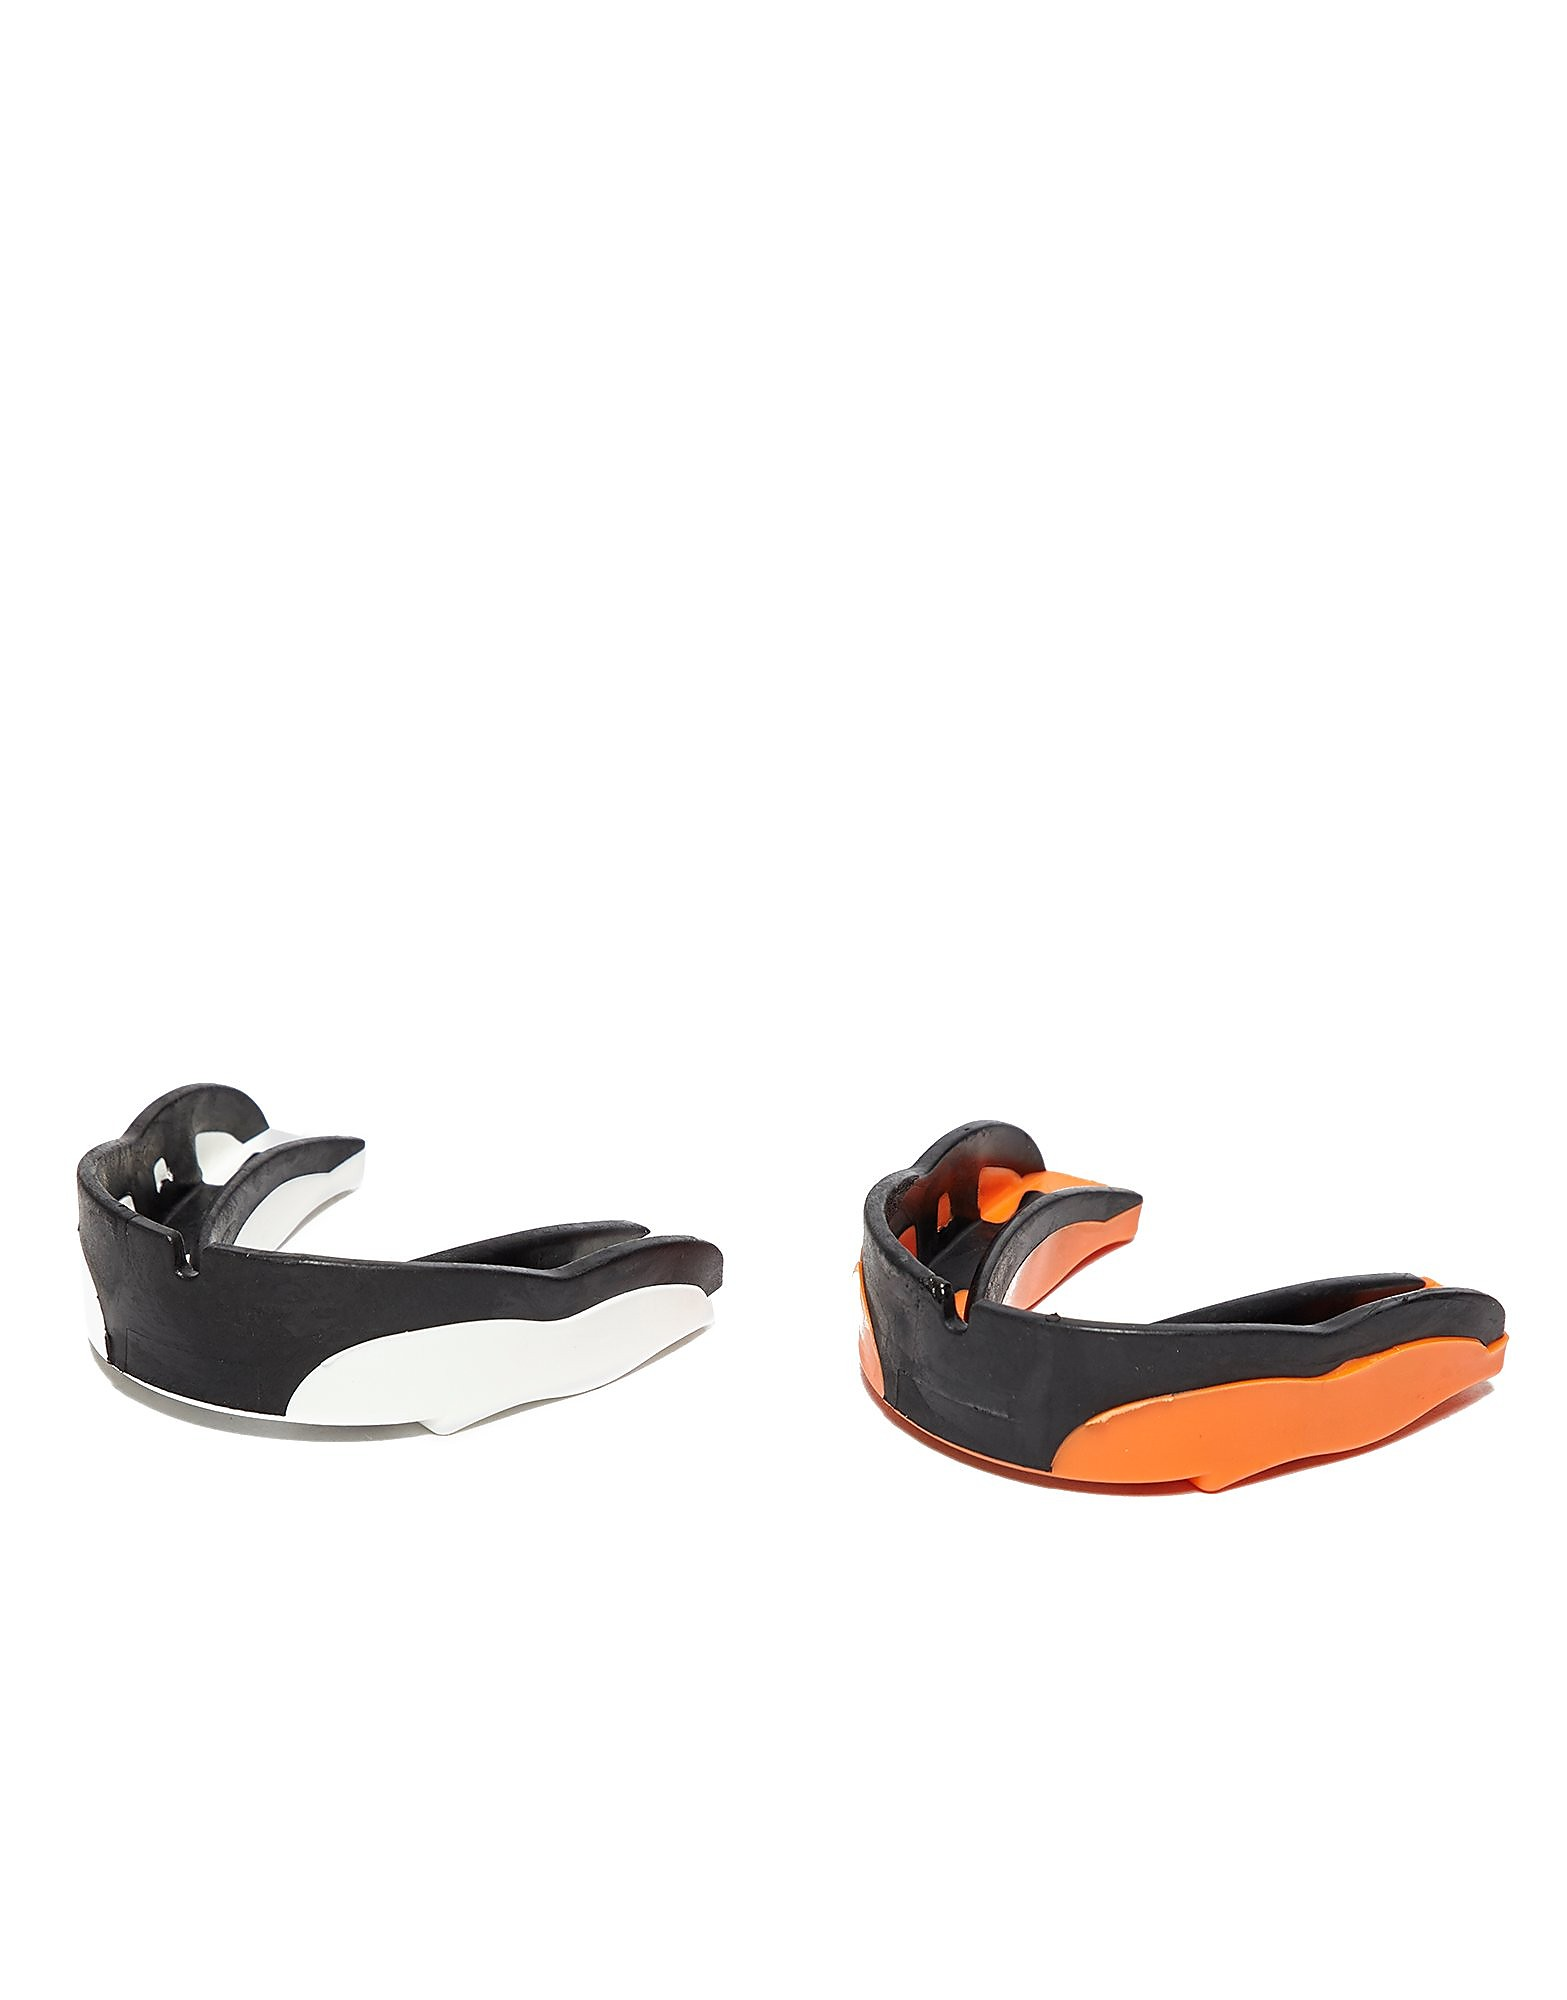 Hy-Pro V1.5 Mouthguard Twin Pack